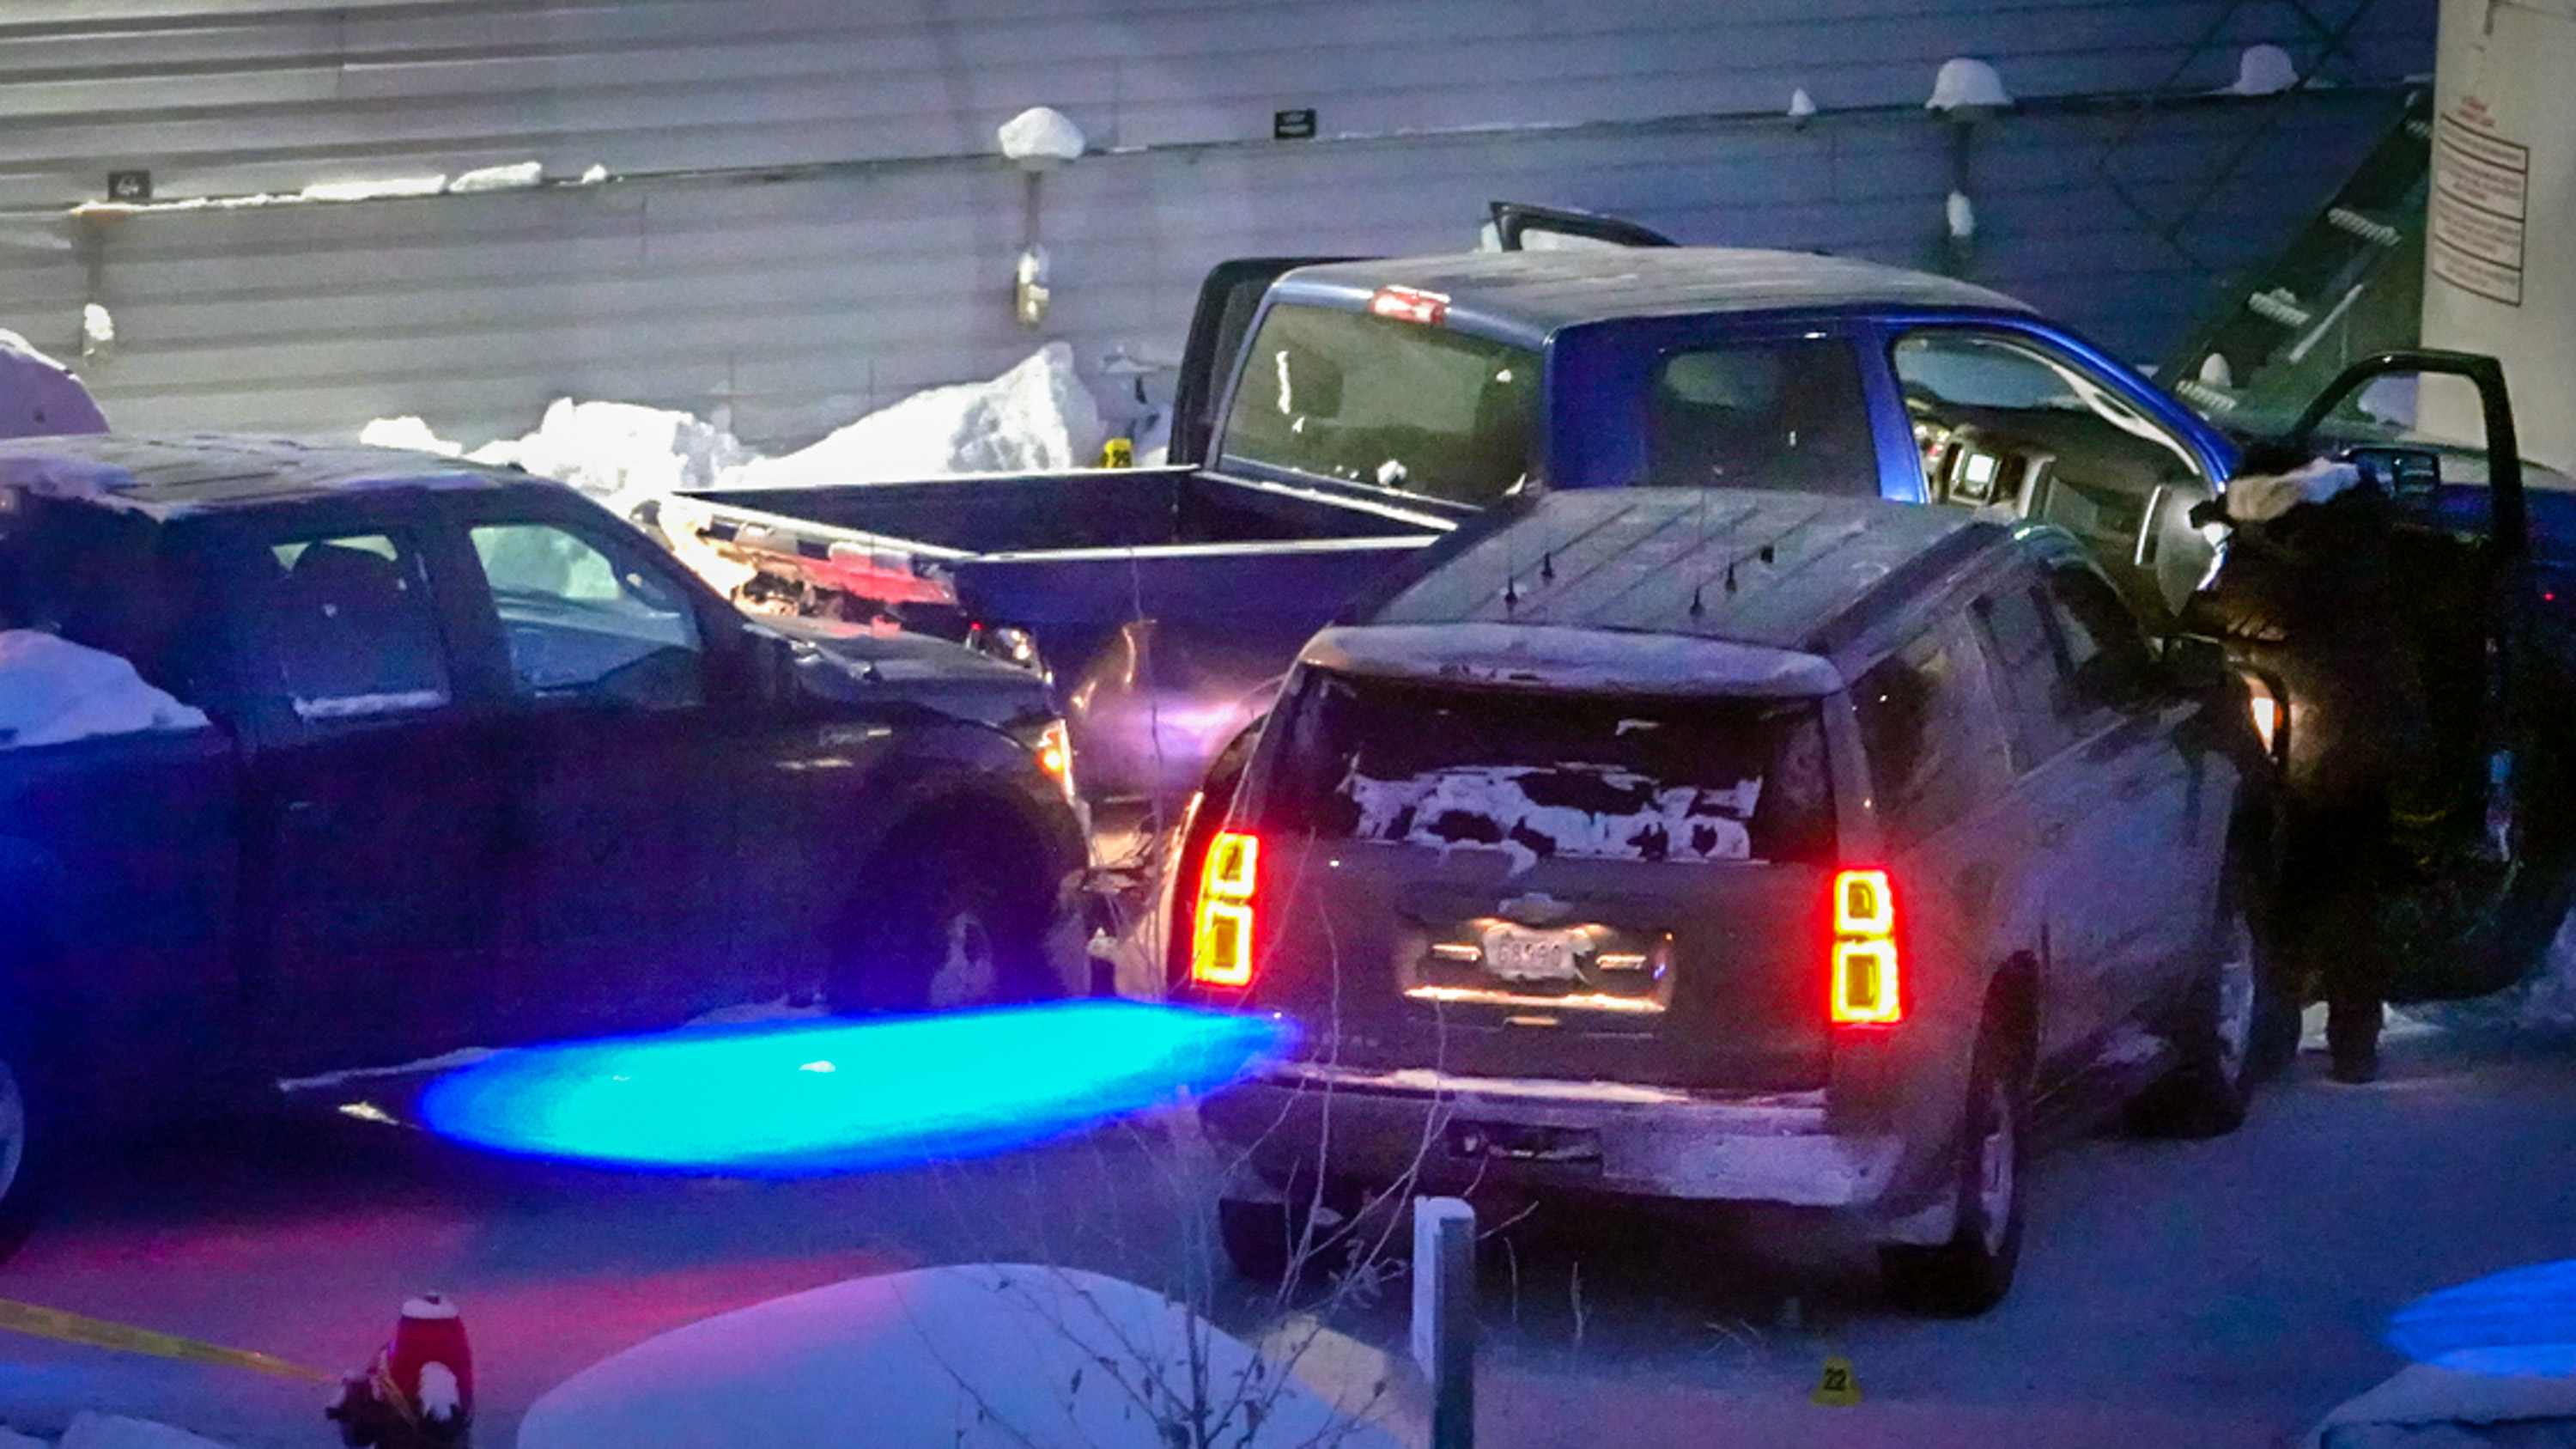 An RCMP officer inspects a blue pickup truck after a collision in a Yellowknife parking lot in January 2019